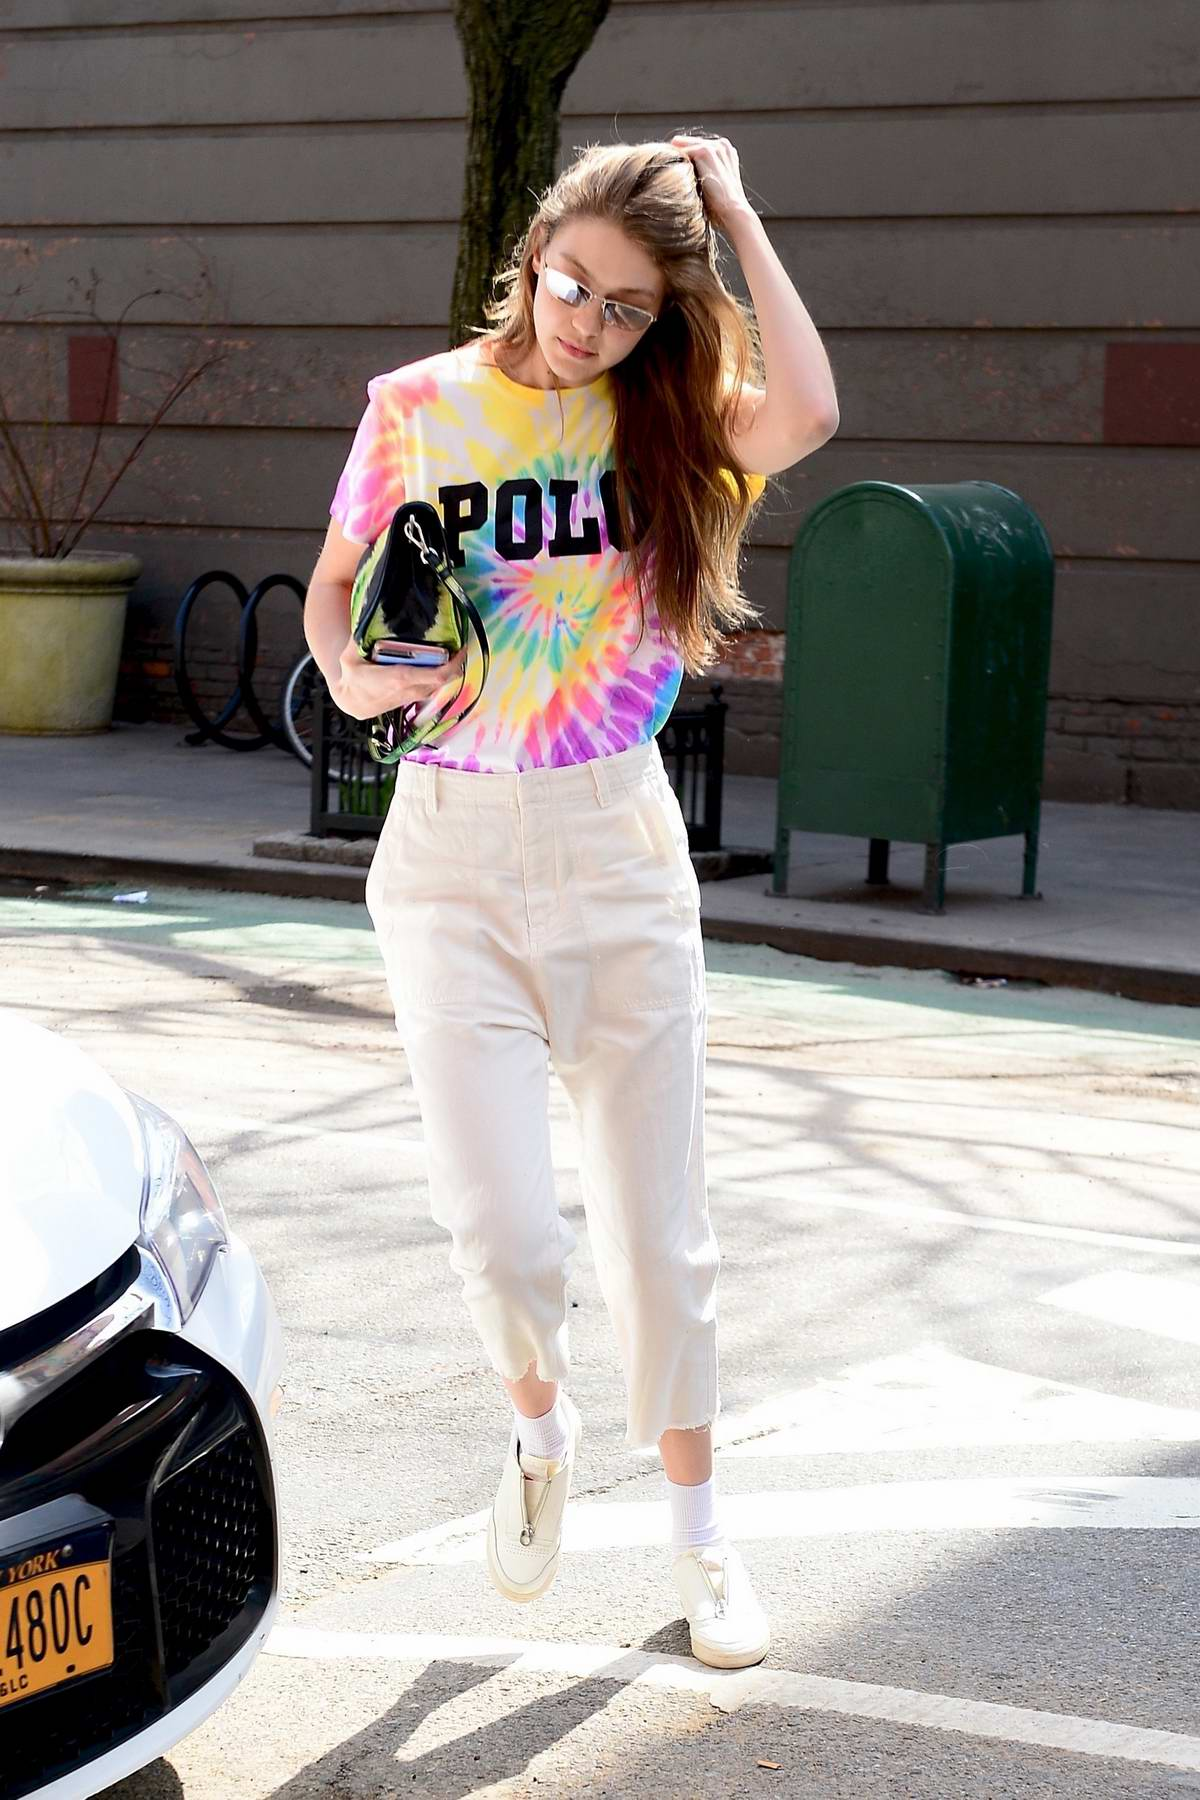 Gigi Hadid steps out rocking a tie dye shirt with white capri pants in New York City